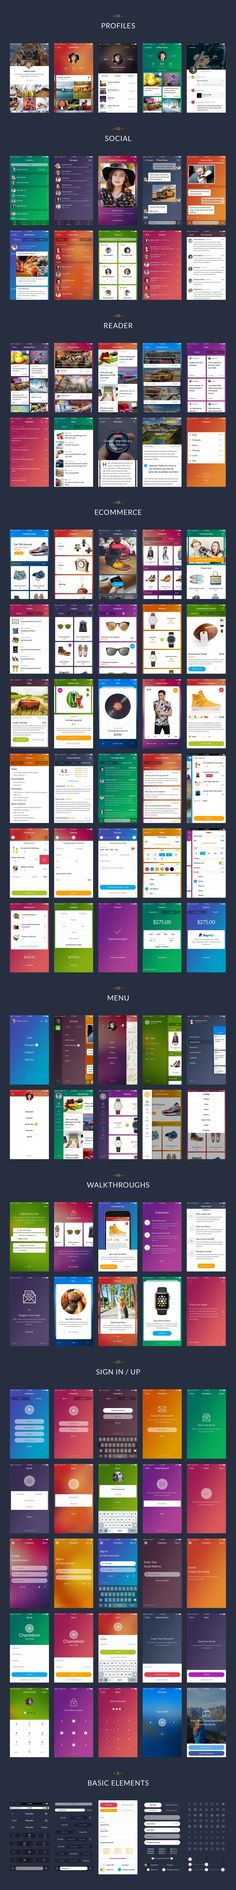 Chameleon is a modern mobile UI kit for Sketch and Photoshop. With 100 beautiful screens in 7 categories, 15 unique themes, 60+ icons and hundreds of neatly organized components you can easily create design for your mobile app. #MobileApps